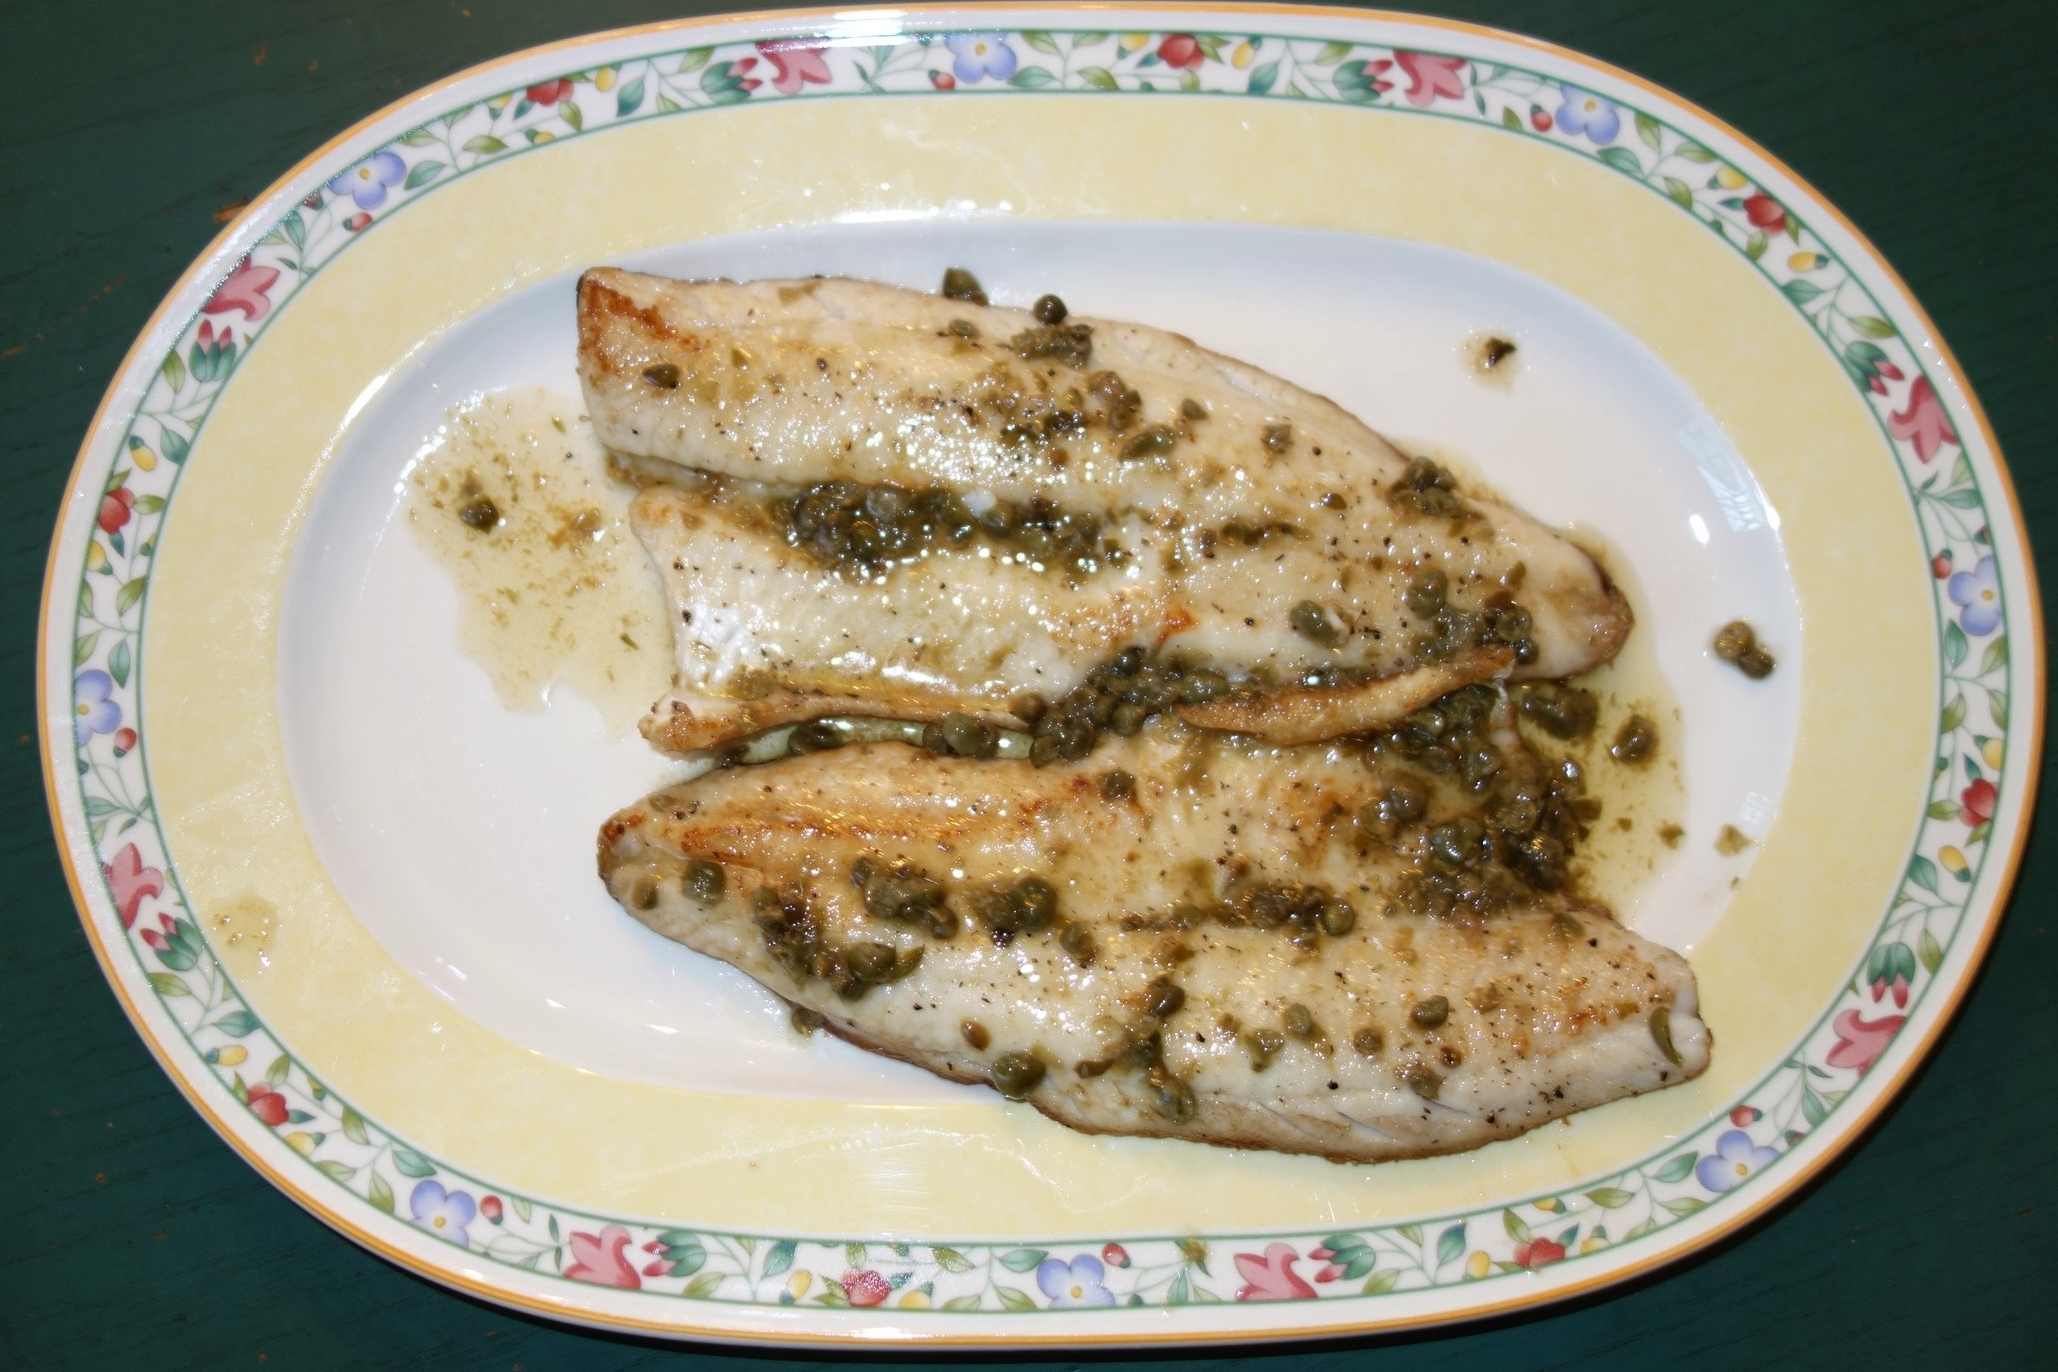 Pour the sauce bowl into the remaining brown butter and drippings. Stir on medium heat until all brown.Move the fish to a serving platter,then pour the sauce over the fish and serve.